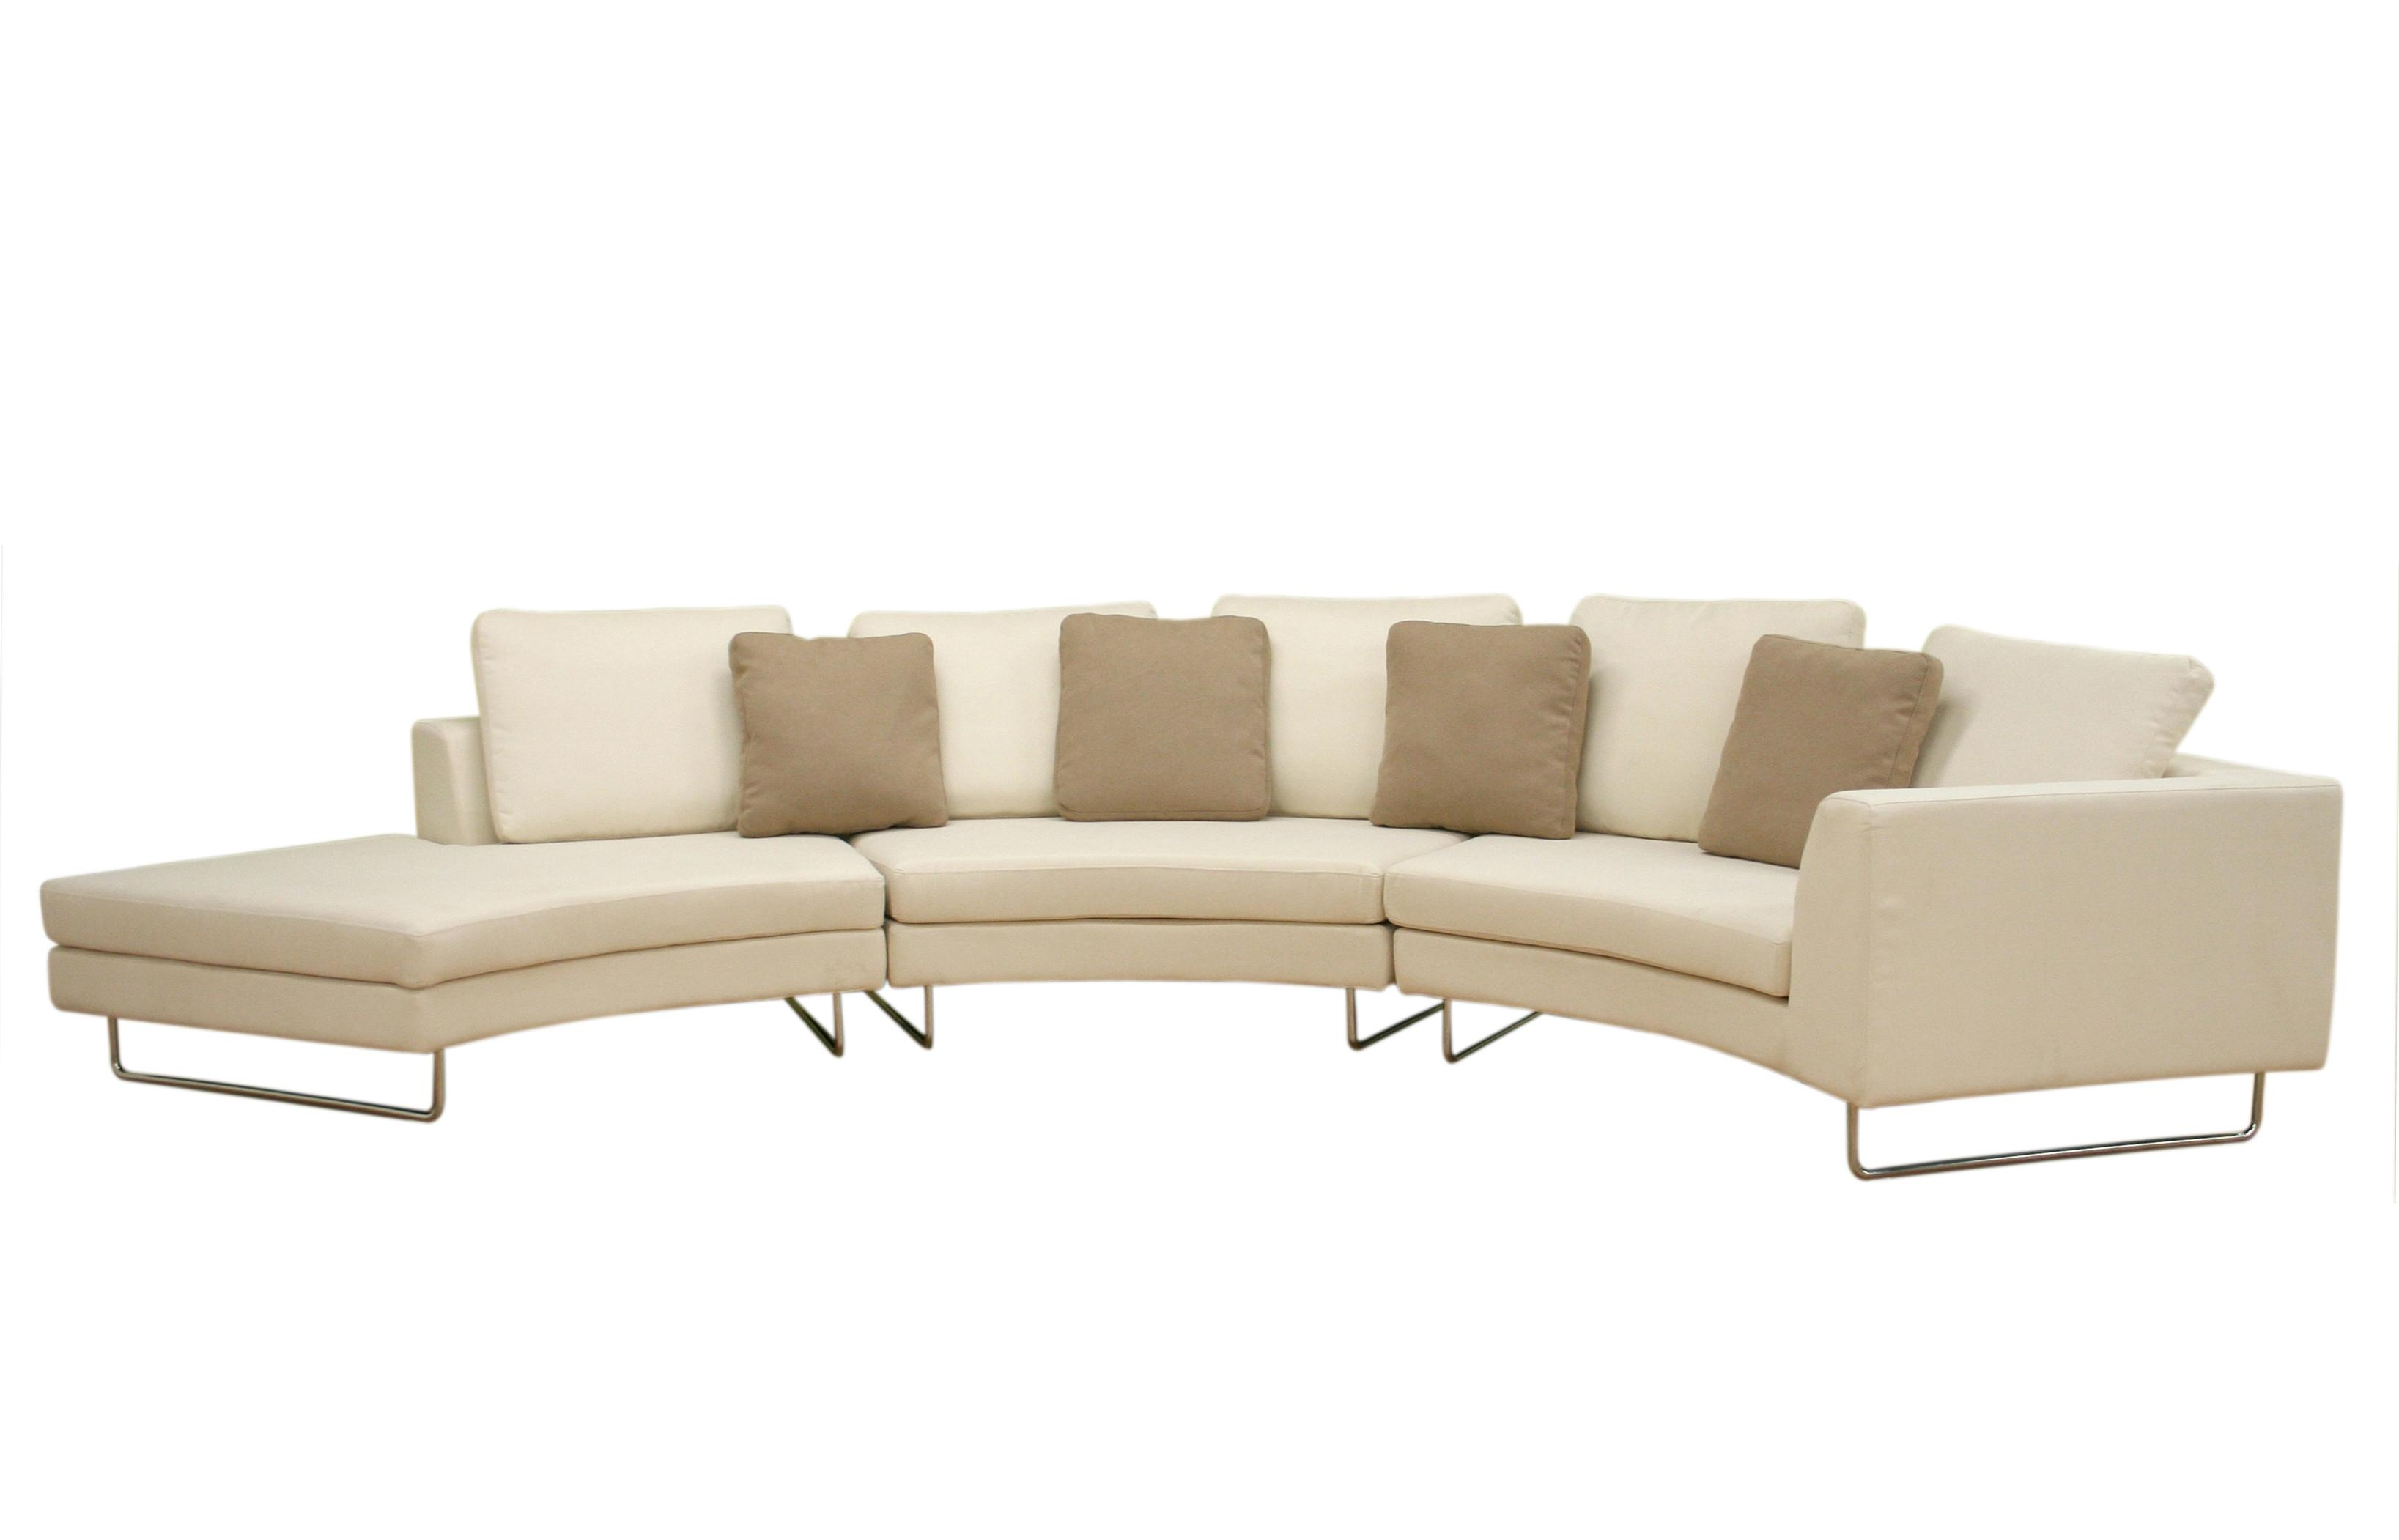 Curved Sectional Sofa Sofas North Carolina With Recliner Designs In Small Curved Sectional Sofas (Image 4 of 20)